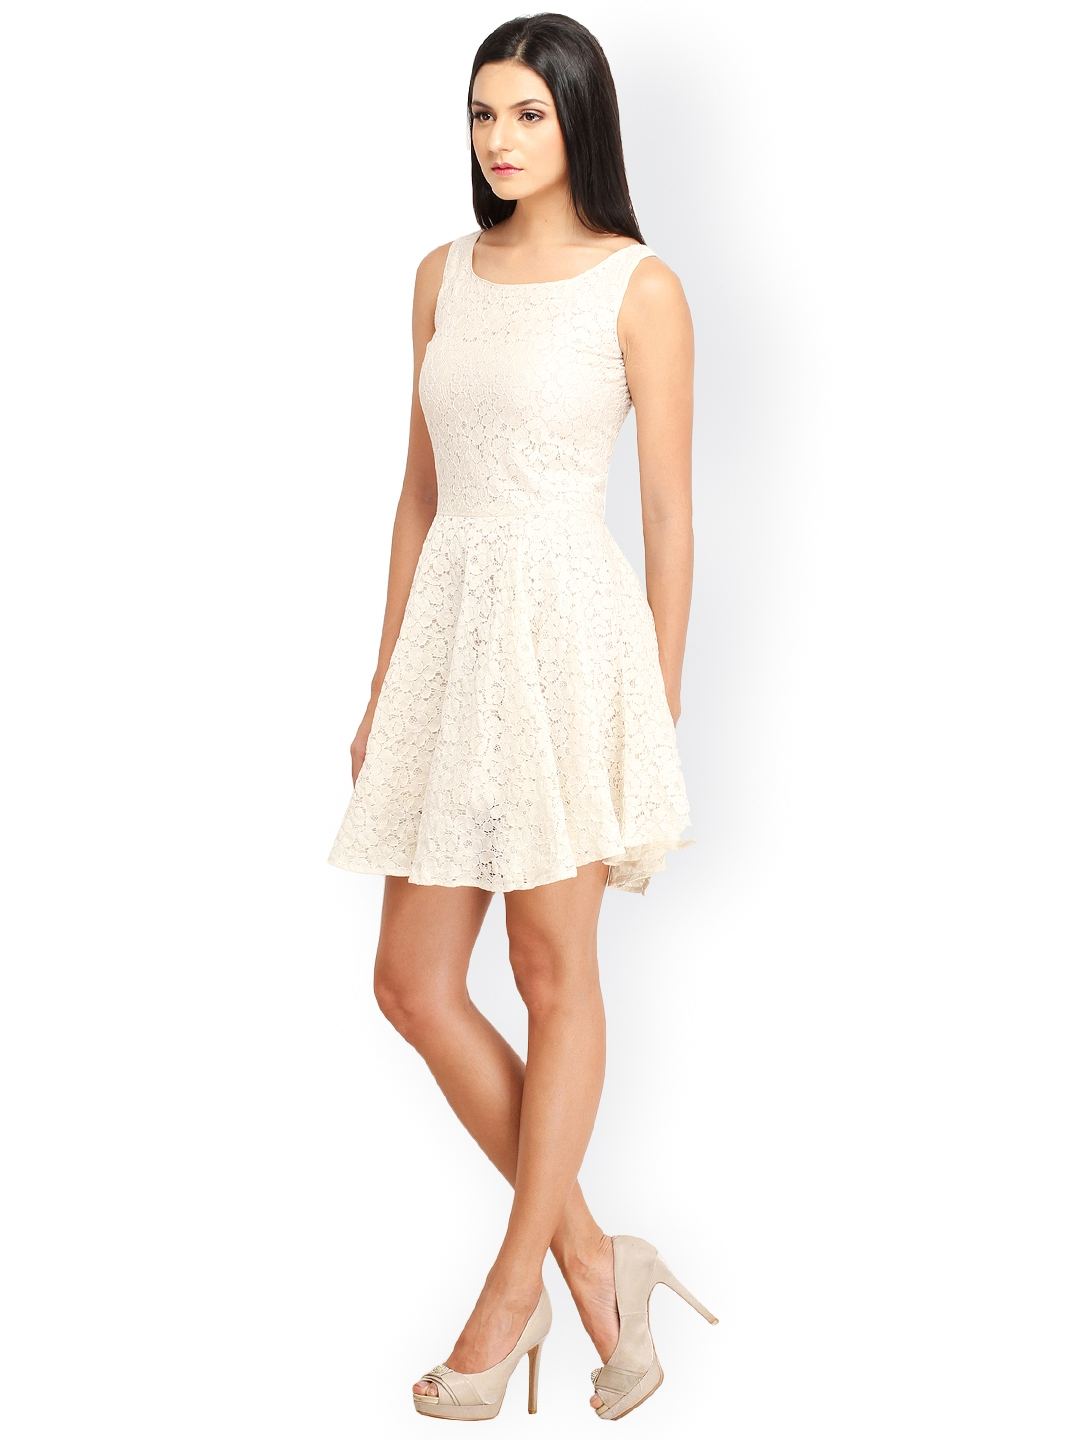 a47a1f7a981 Buy Cation Off White Fit   Flare Lace Dress - Dresses for Women ...